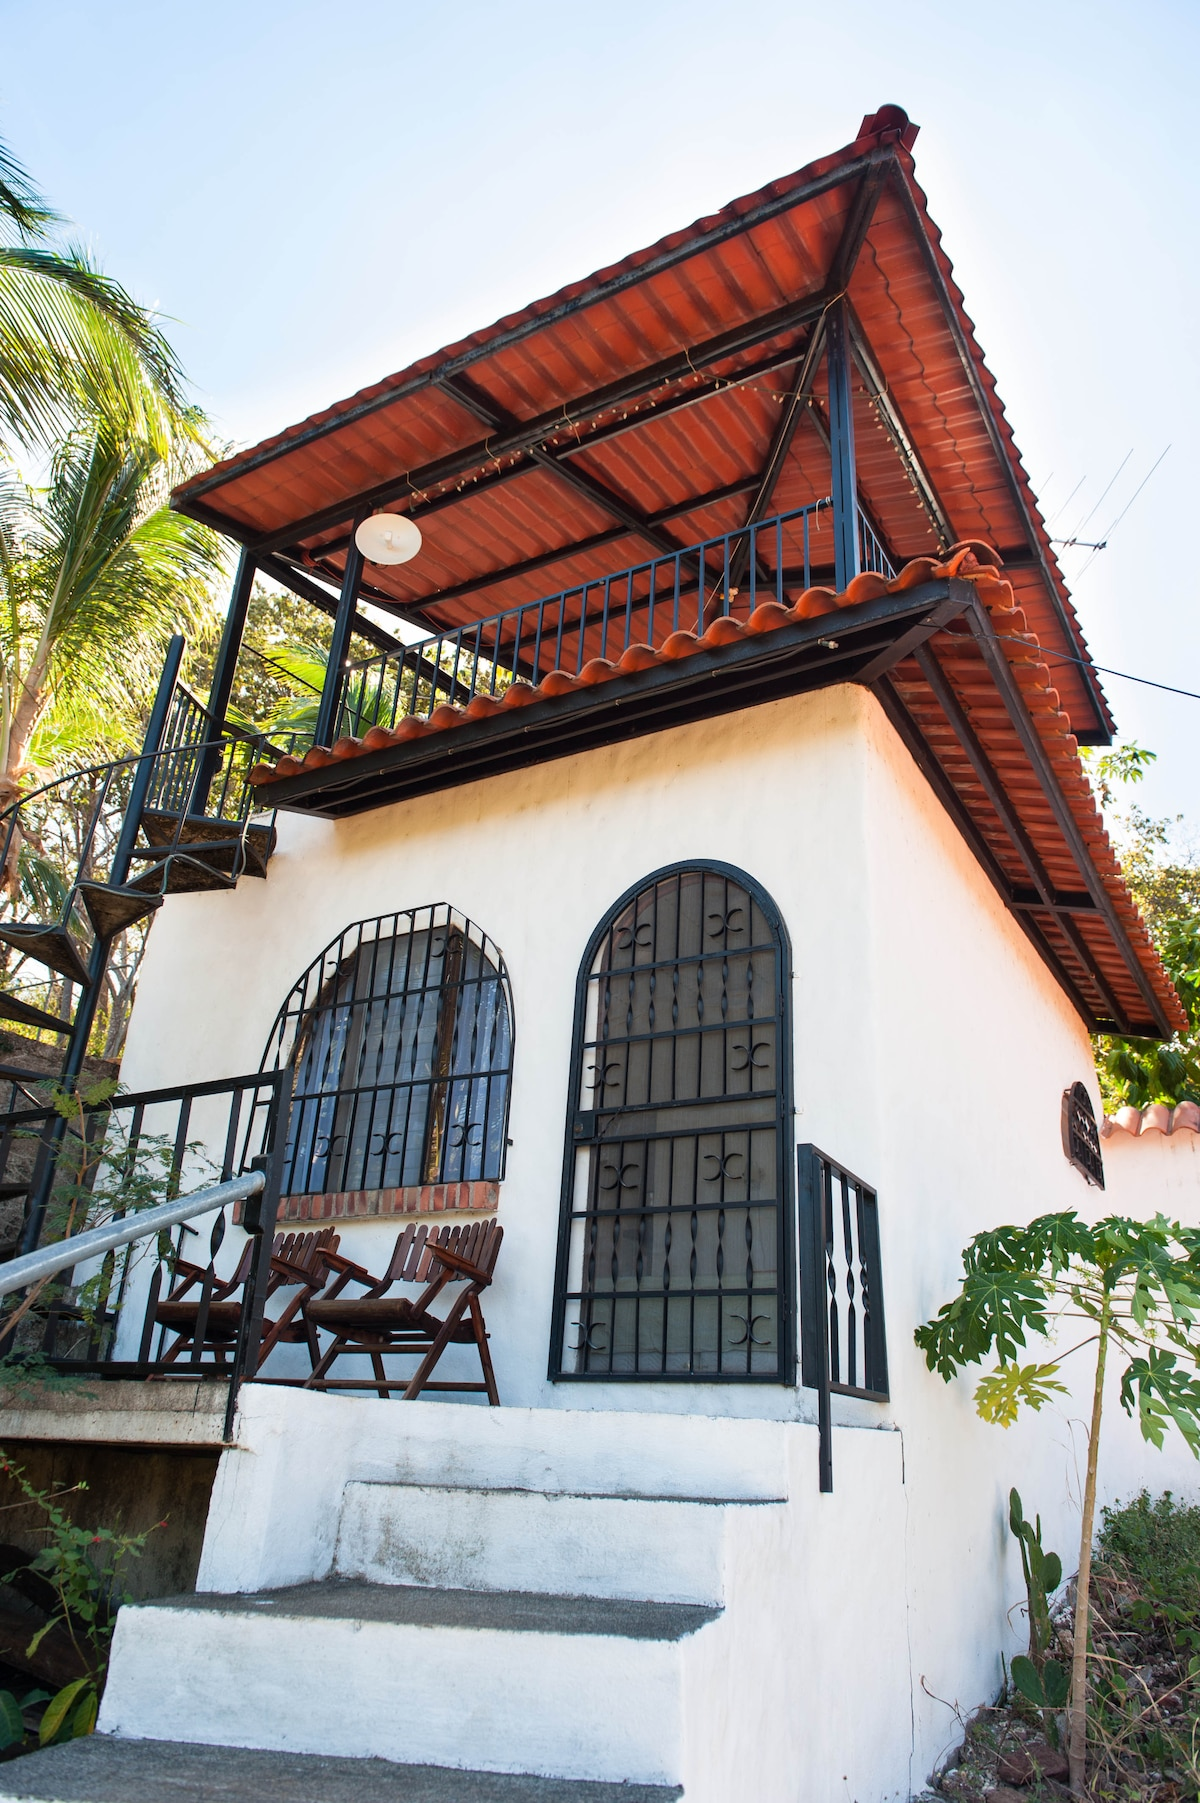 Cabina with sitting area in front and private tower patio above